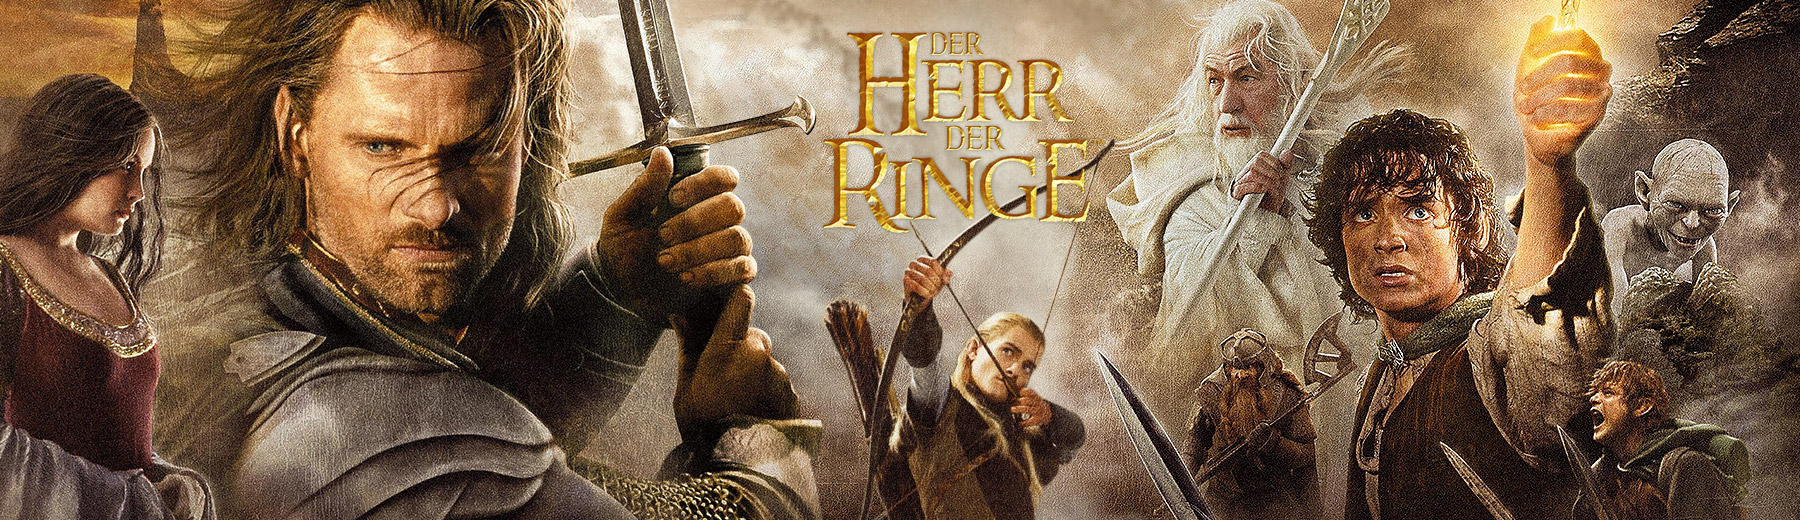 herr der ringe fanartikel zum film epos elbenwald. Black Bedroom Furniture Sets. Home Design Ideas